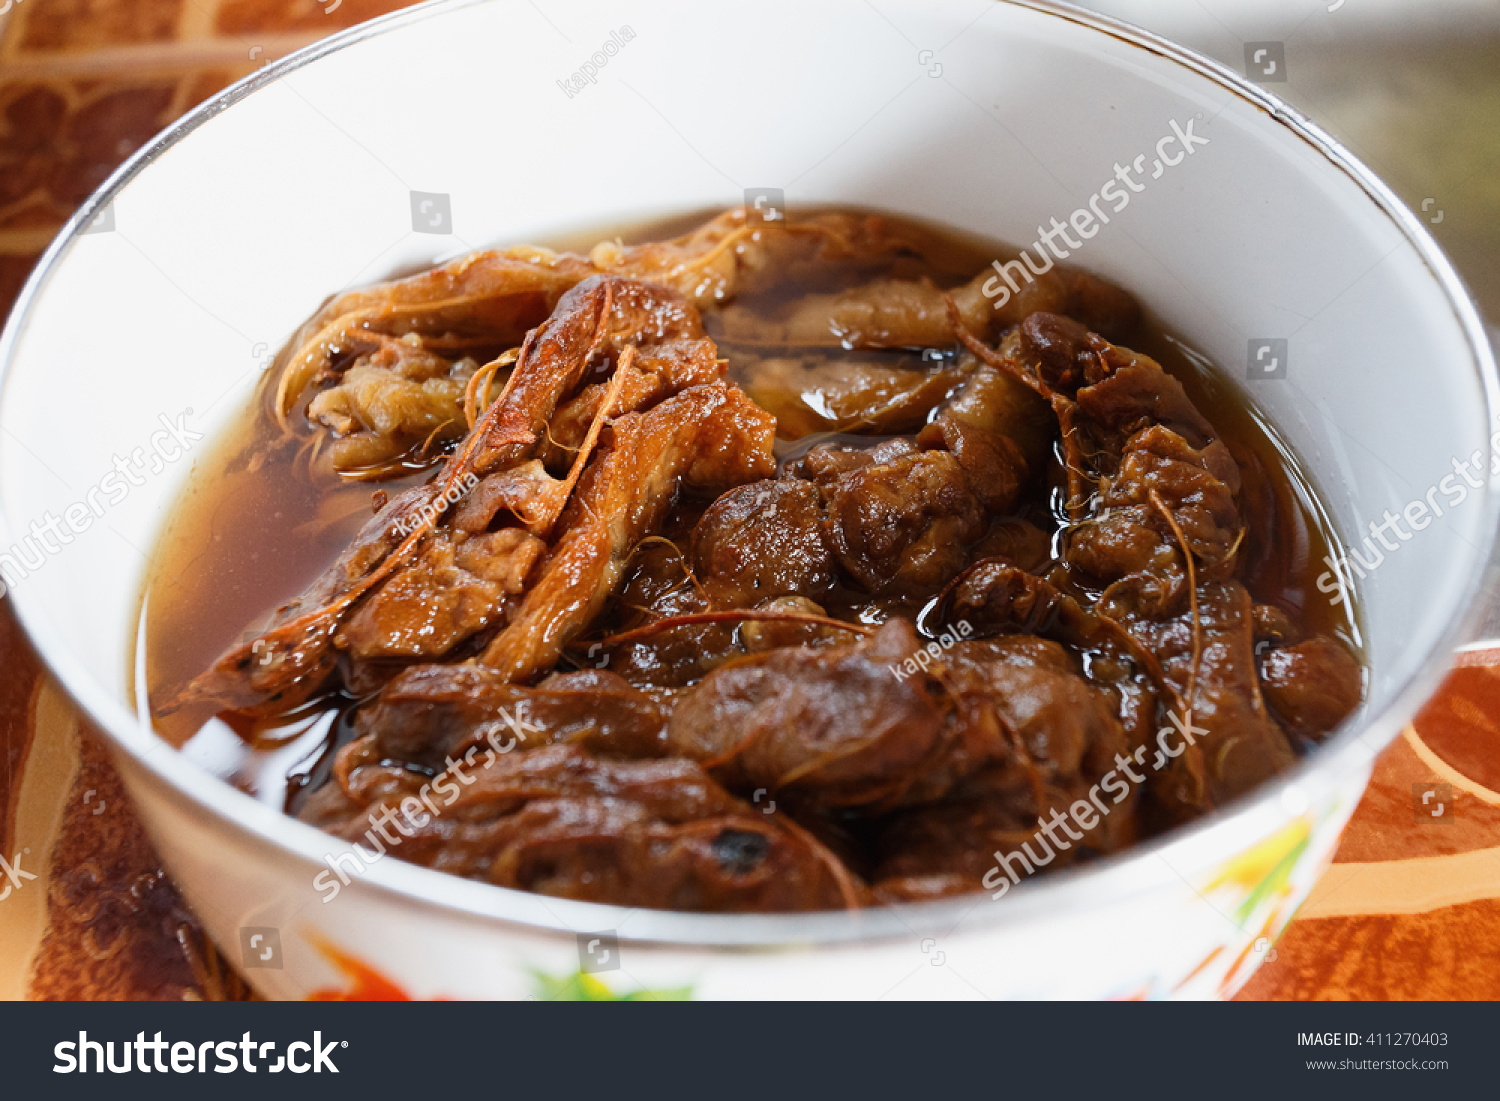 Tamarind And Sweet Tamarind For Cooking Stock Photo 411270403 : Shutterstock